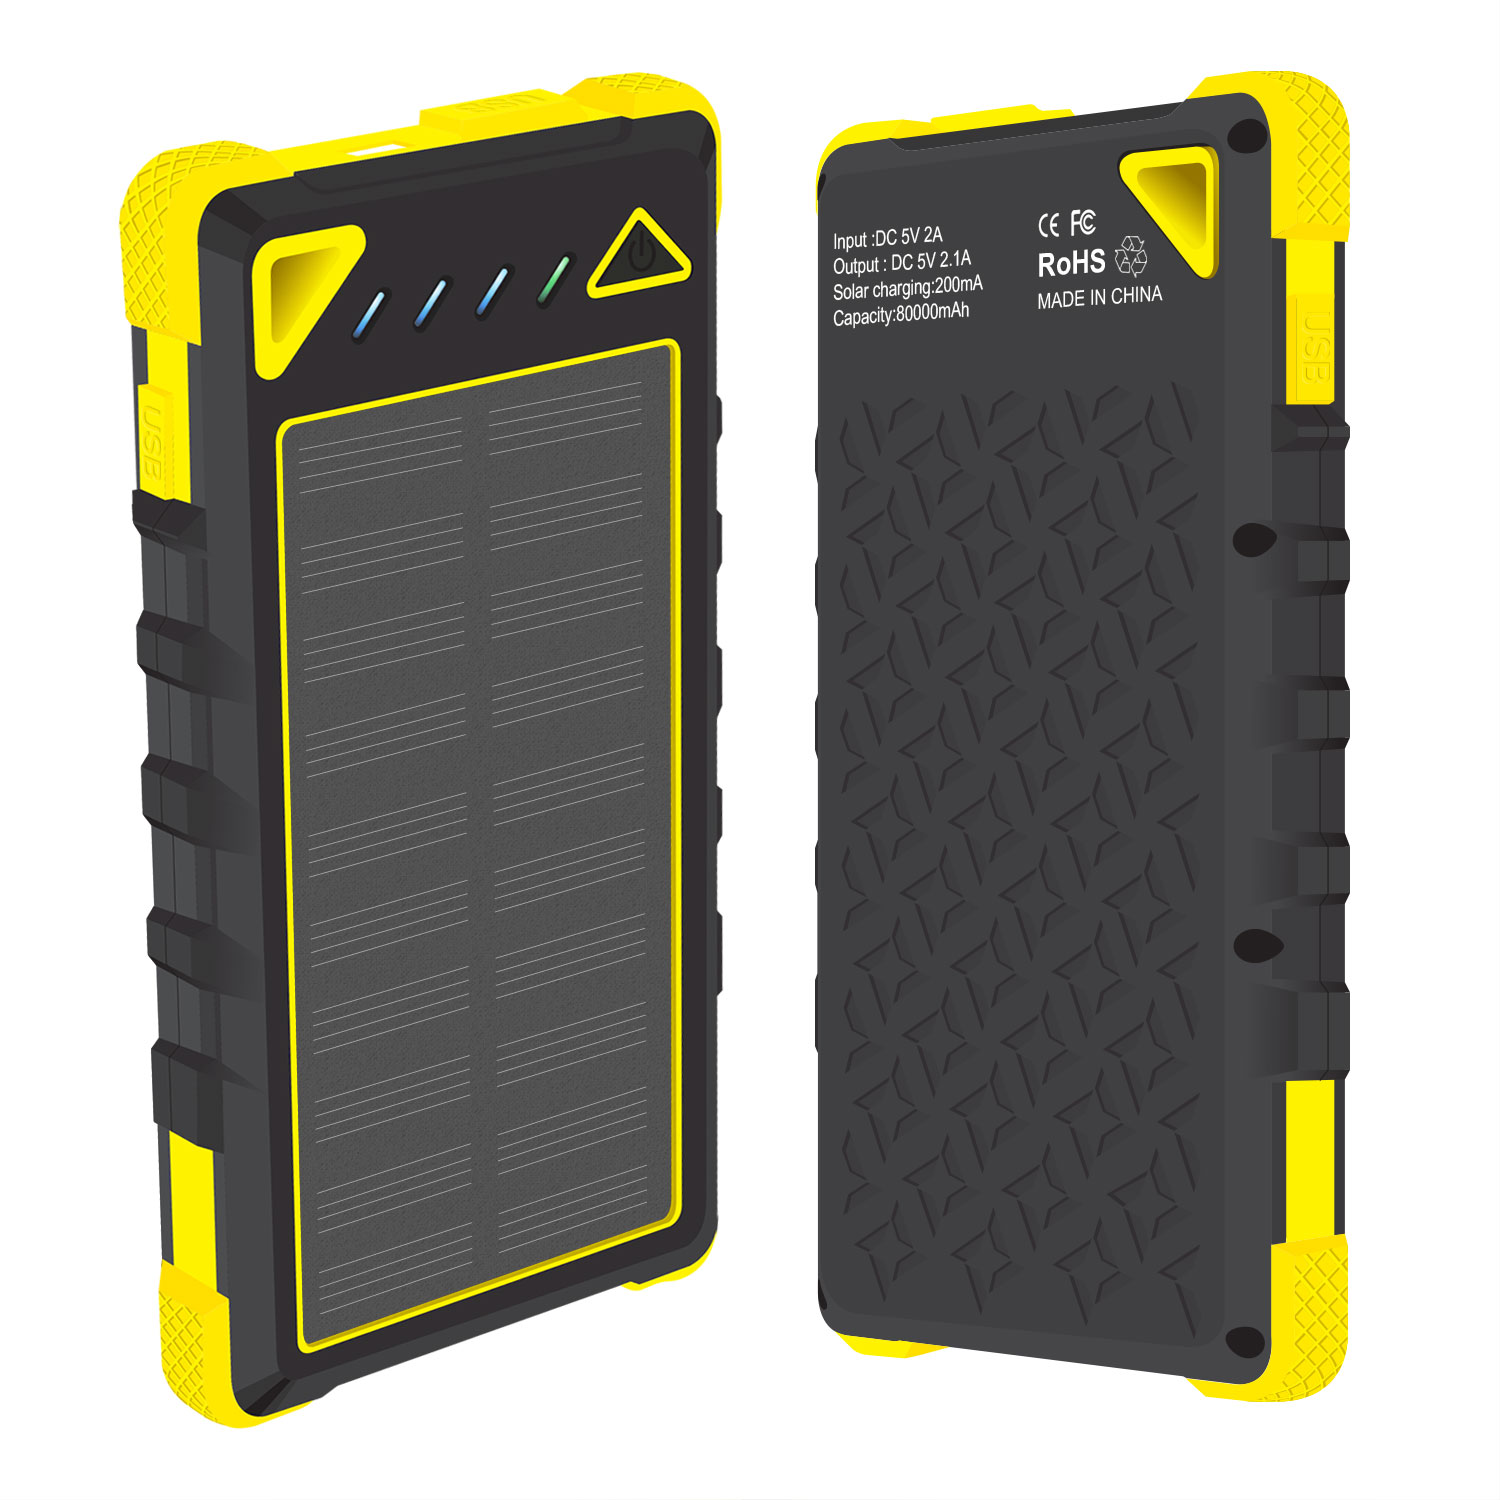 LG G8 ThinQ Solar Powered Portable PowerBank Type-C Yellow